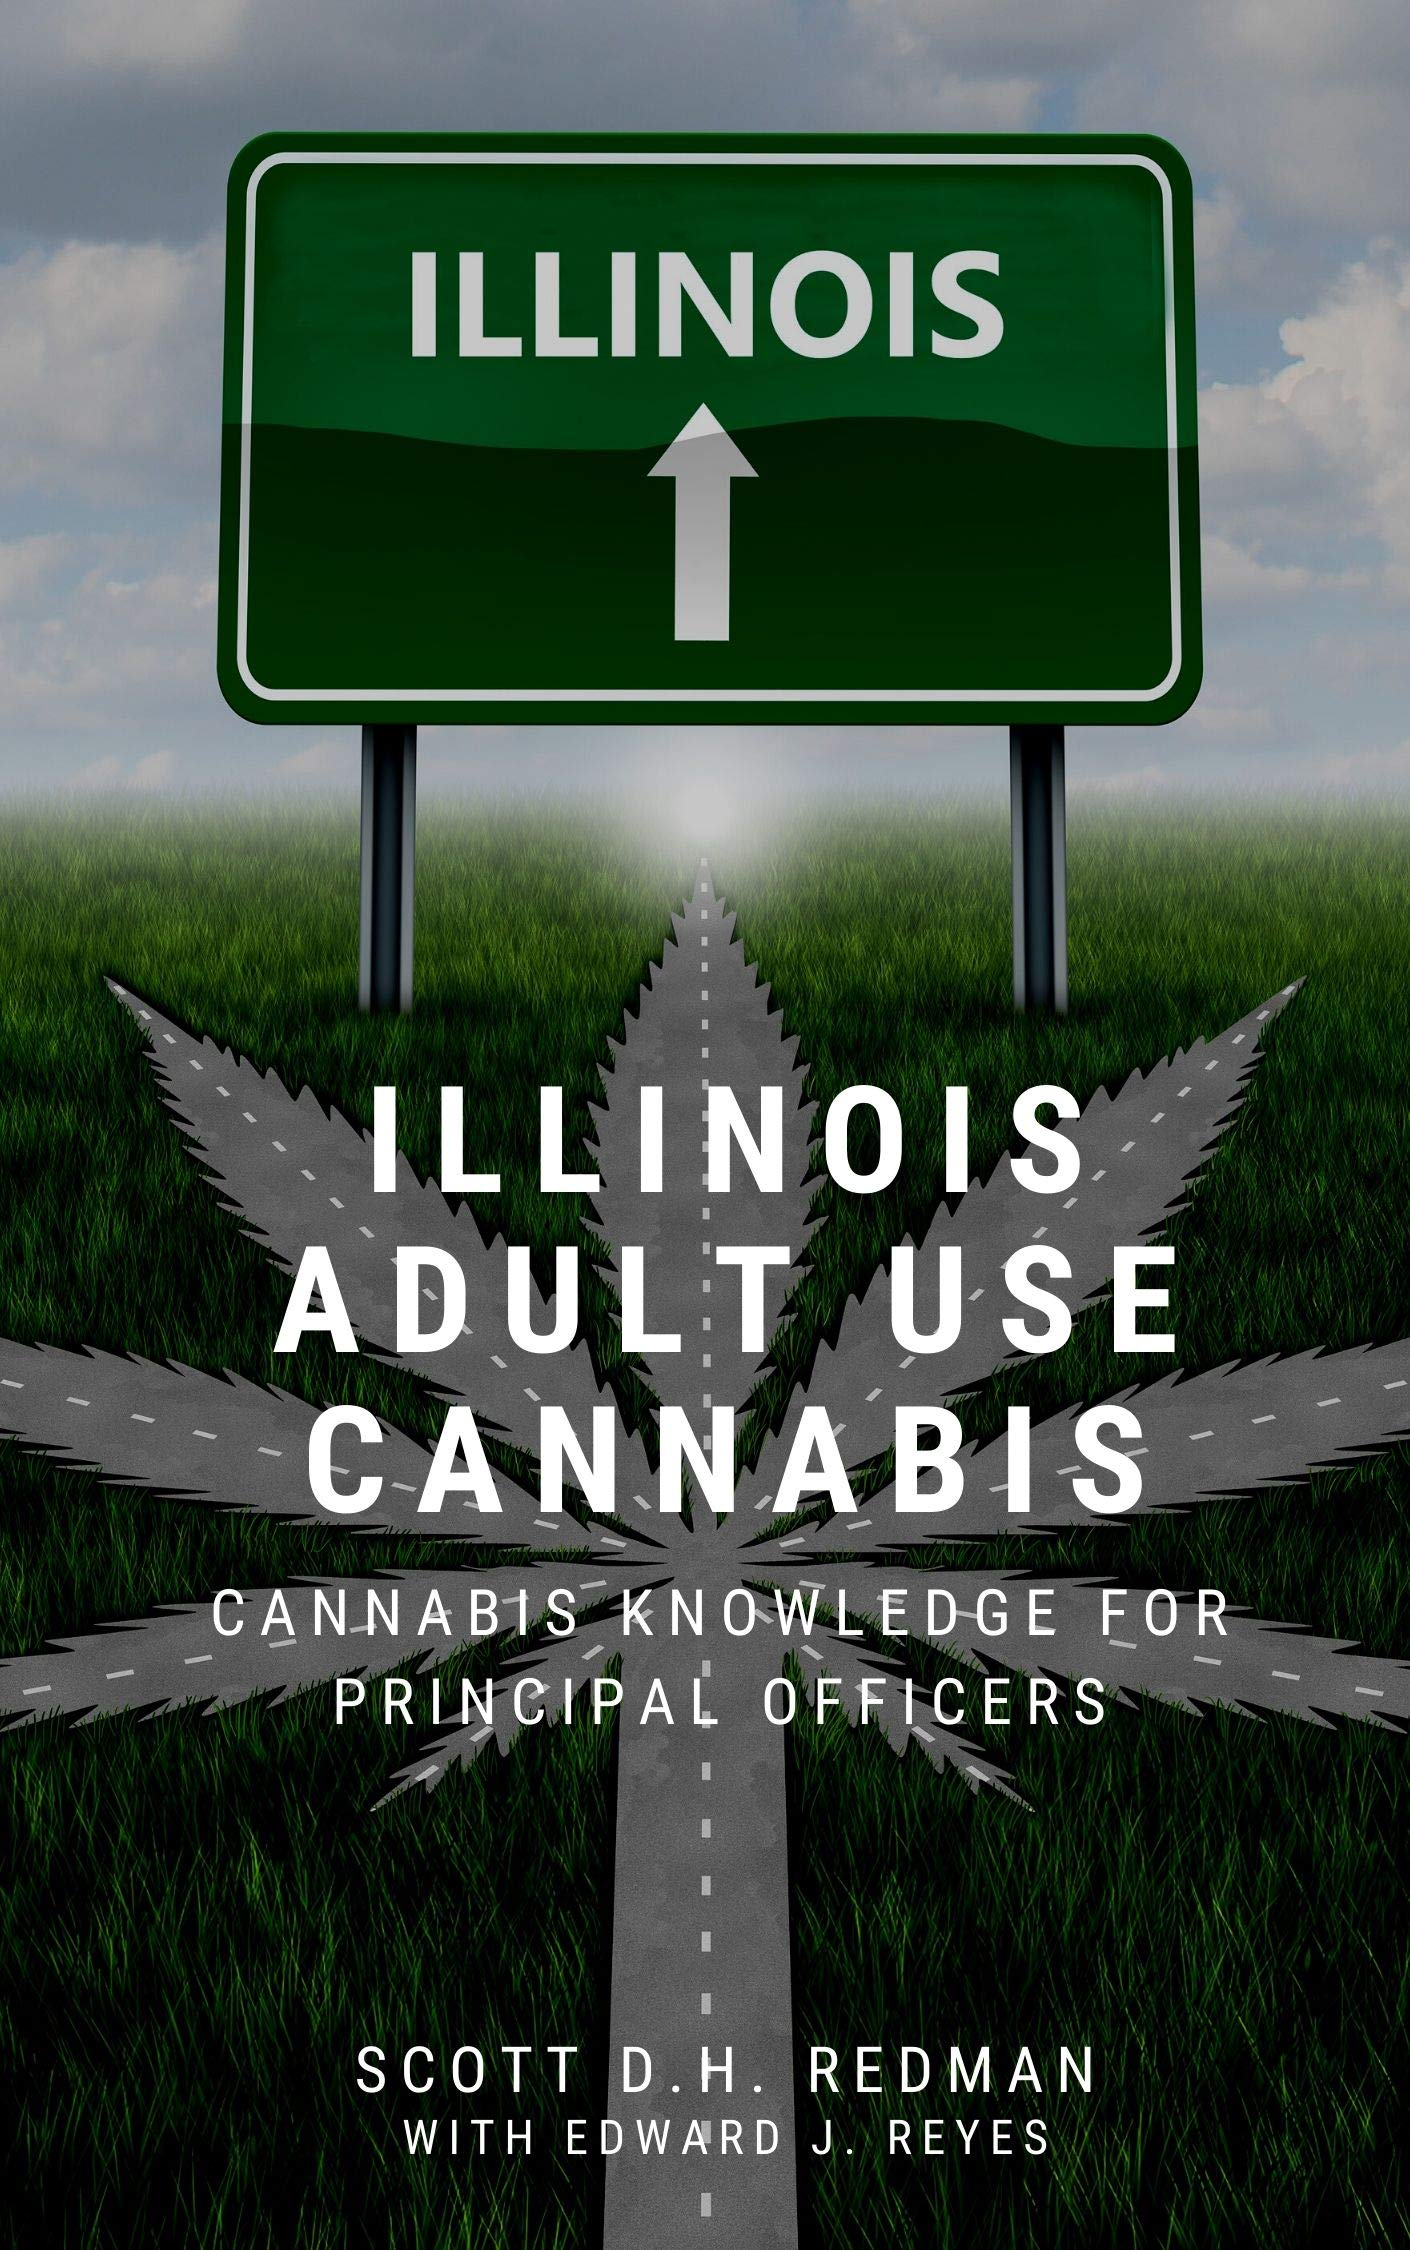 Illinois Adult Use Cannabis: Cannabis Knowledge for Principal Officers